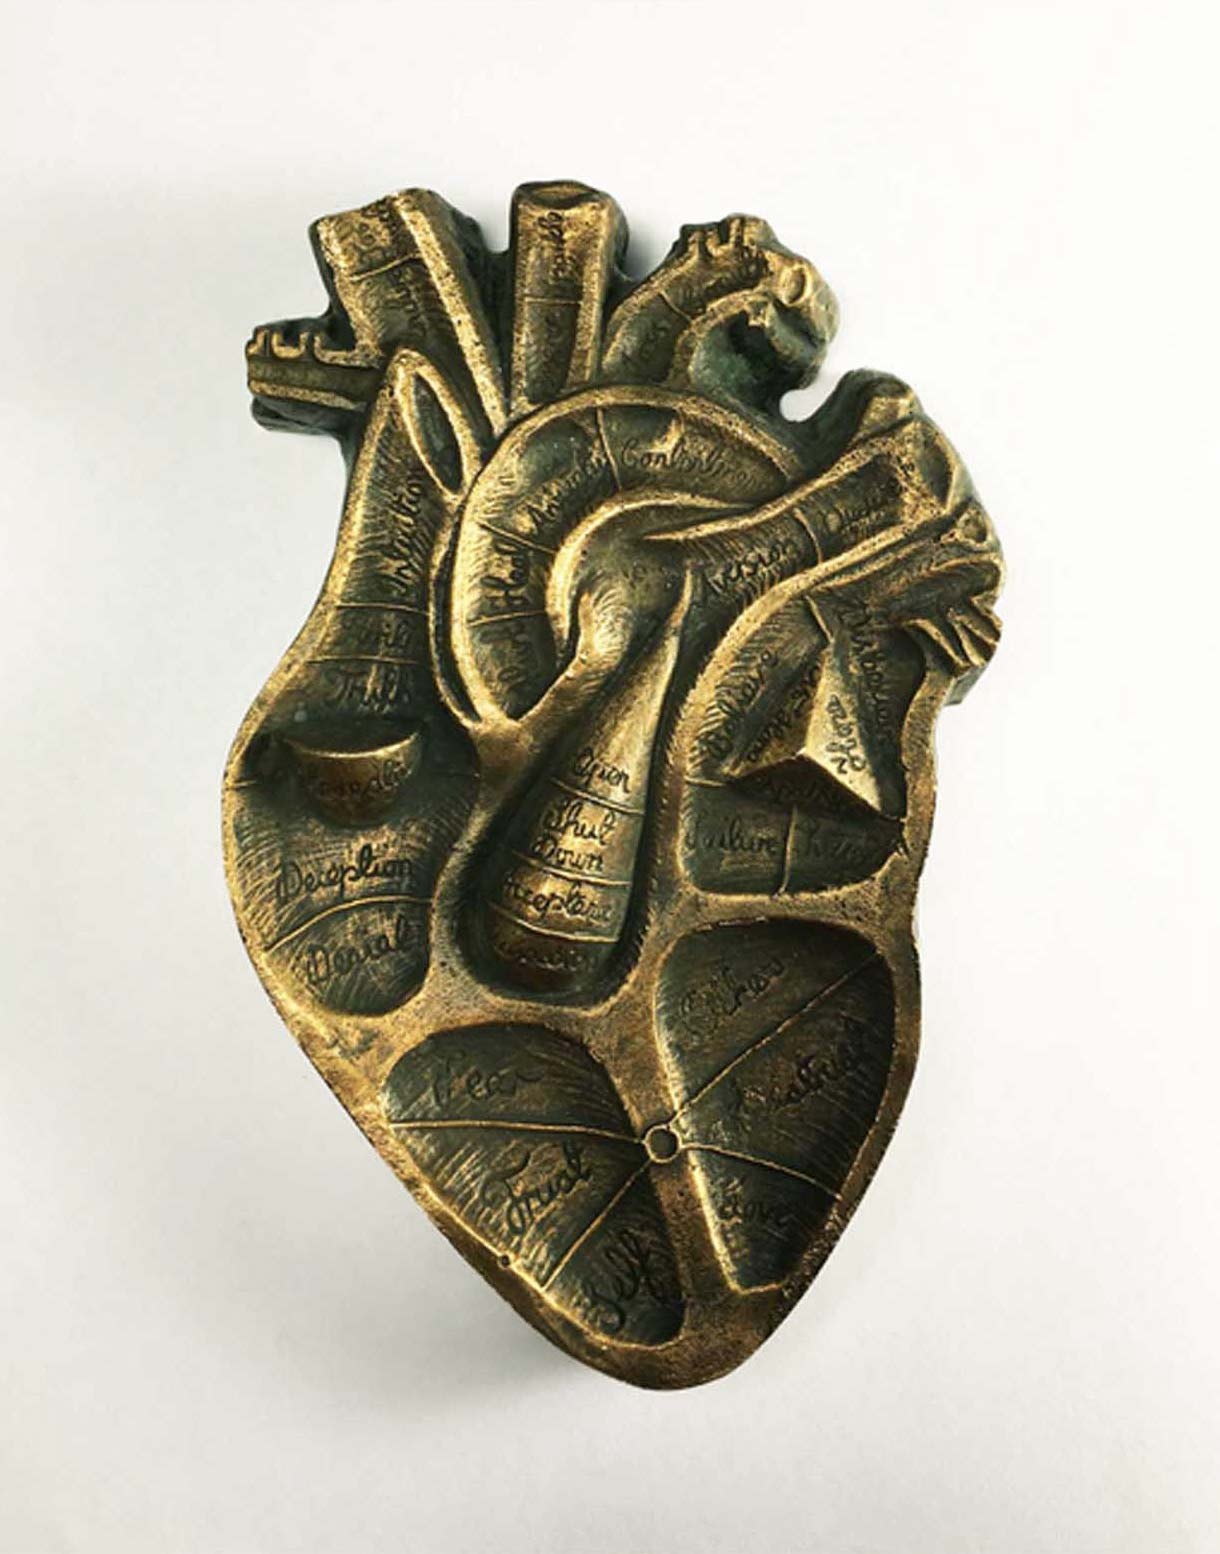 Handmade artwork of a anatomical heart sculpture with phrenological text in Bronze by artist Kate Ive